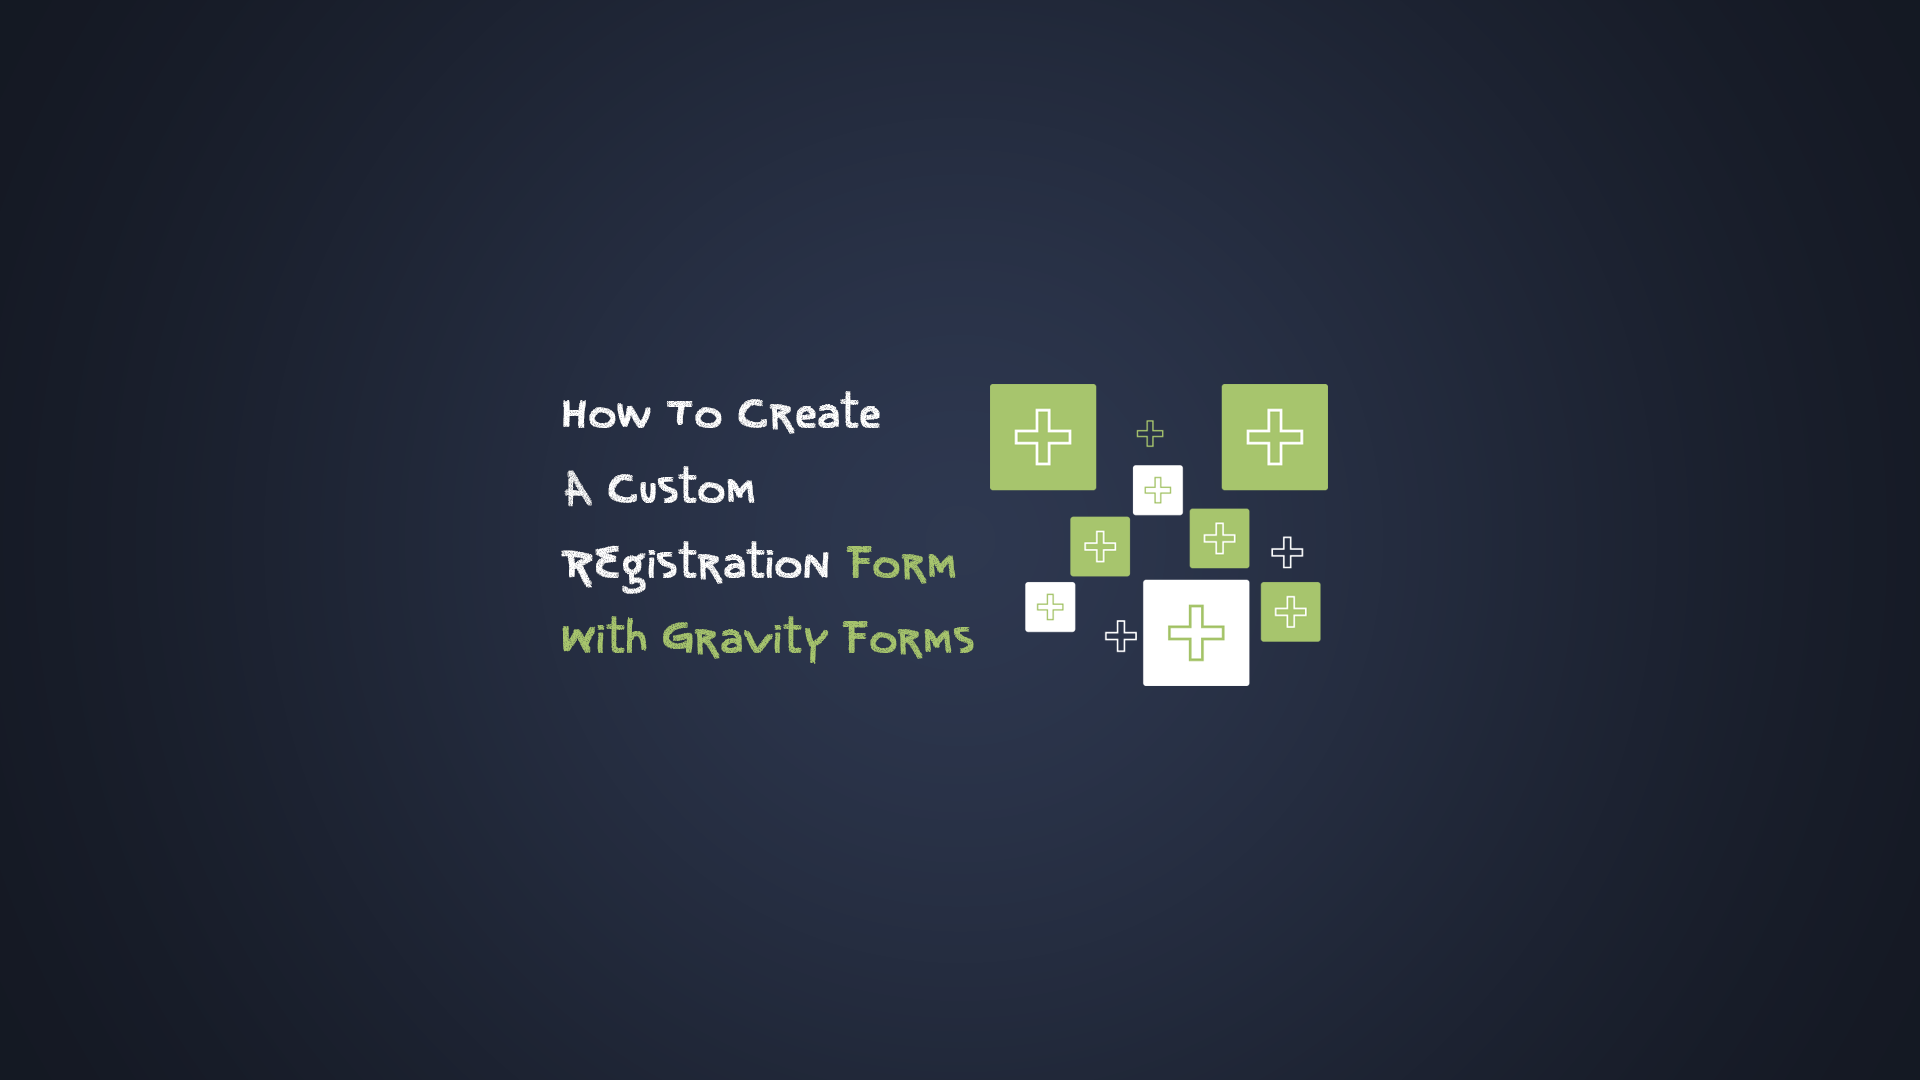 How to create a registration